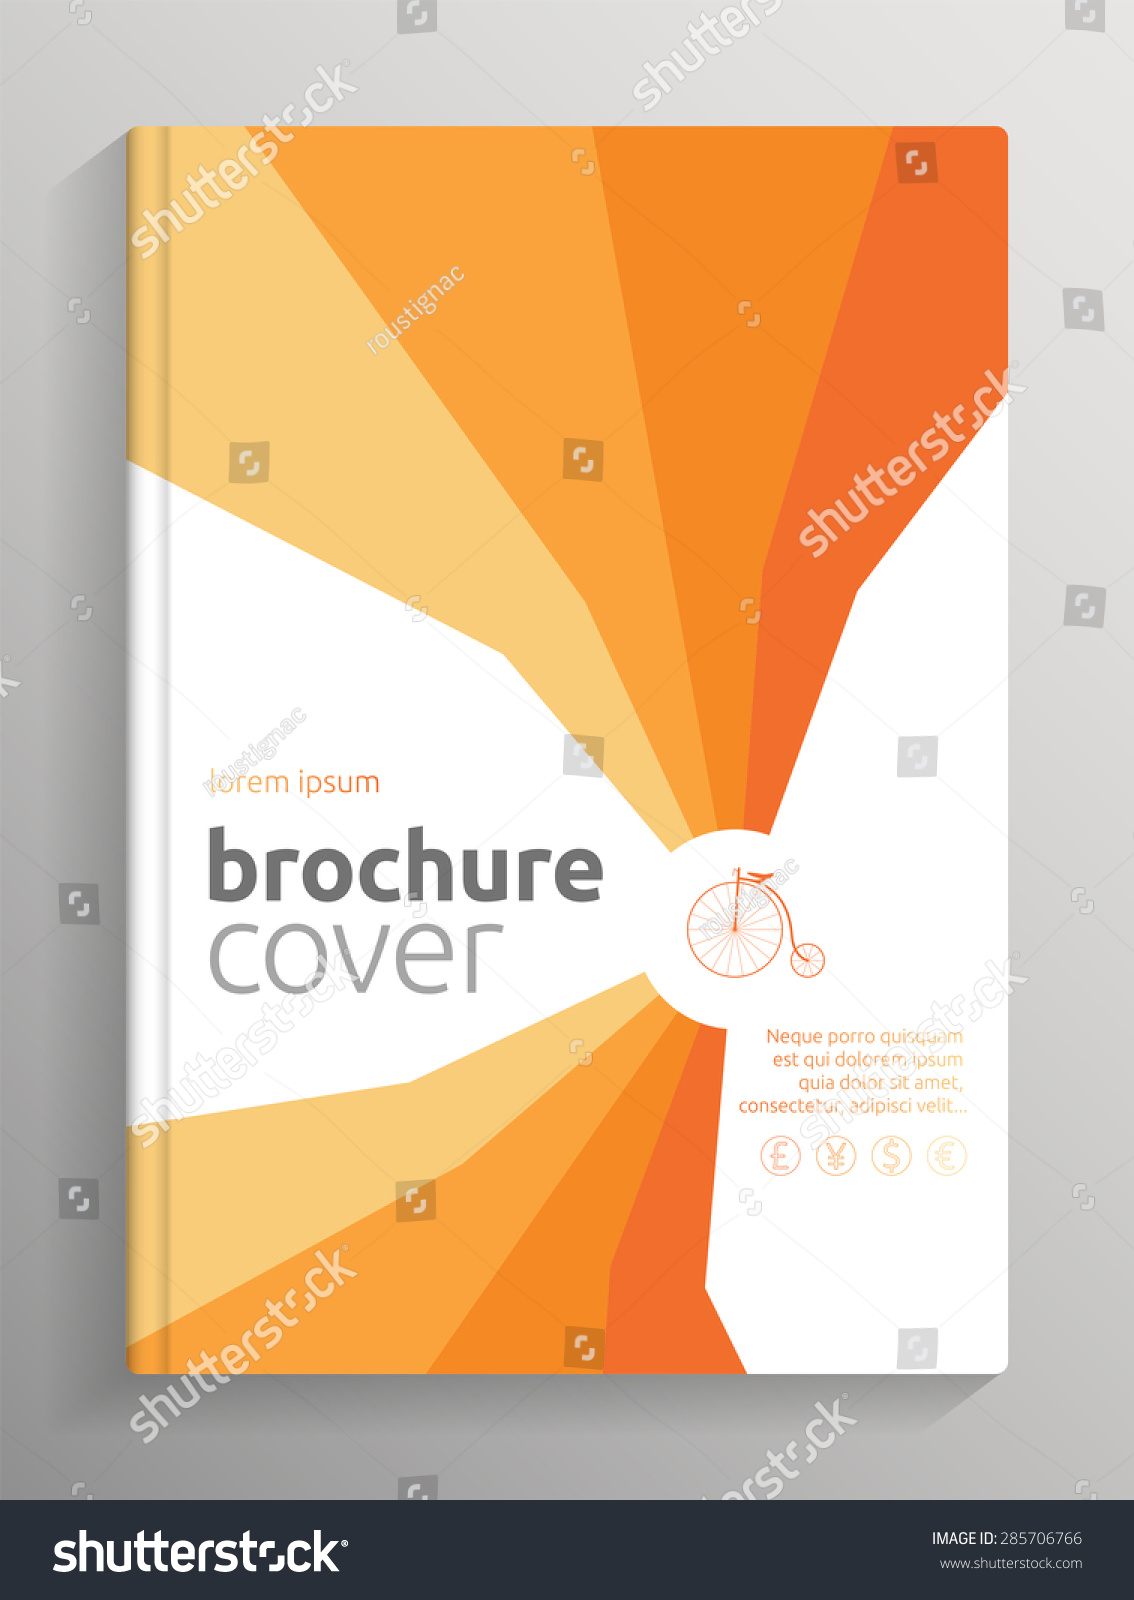 Cover Book Brochure Layout Vector : Brochure book cover layout orange stripes theme stock